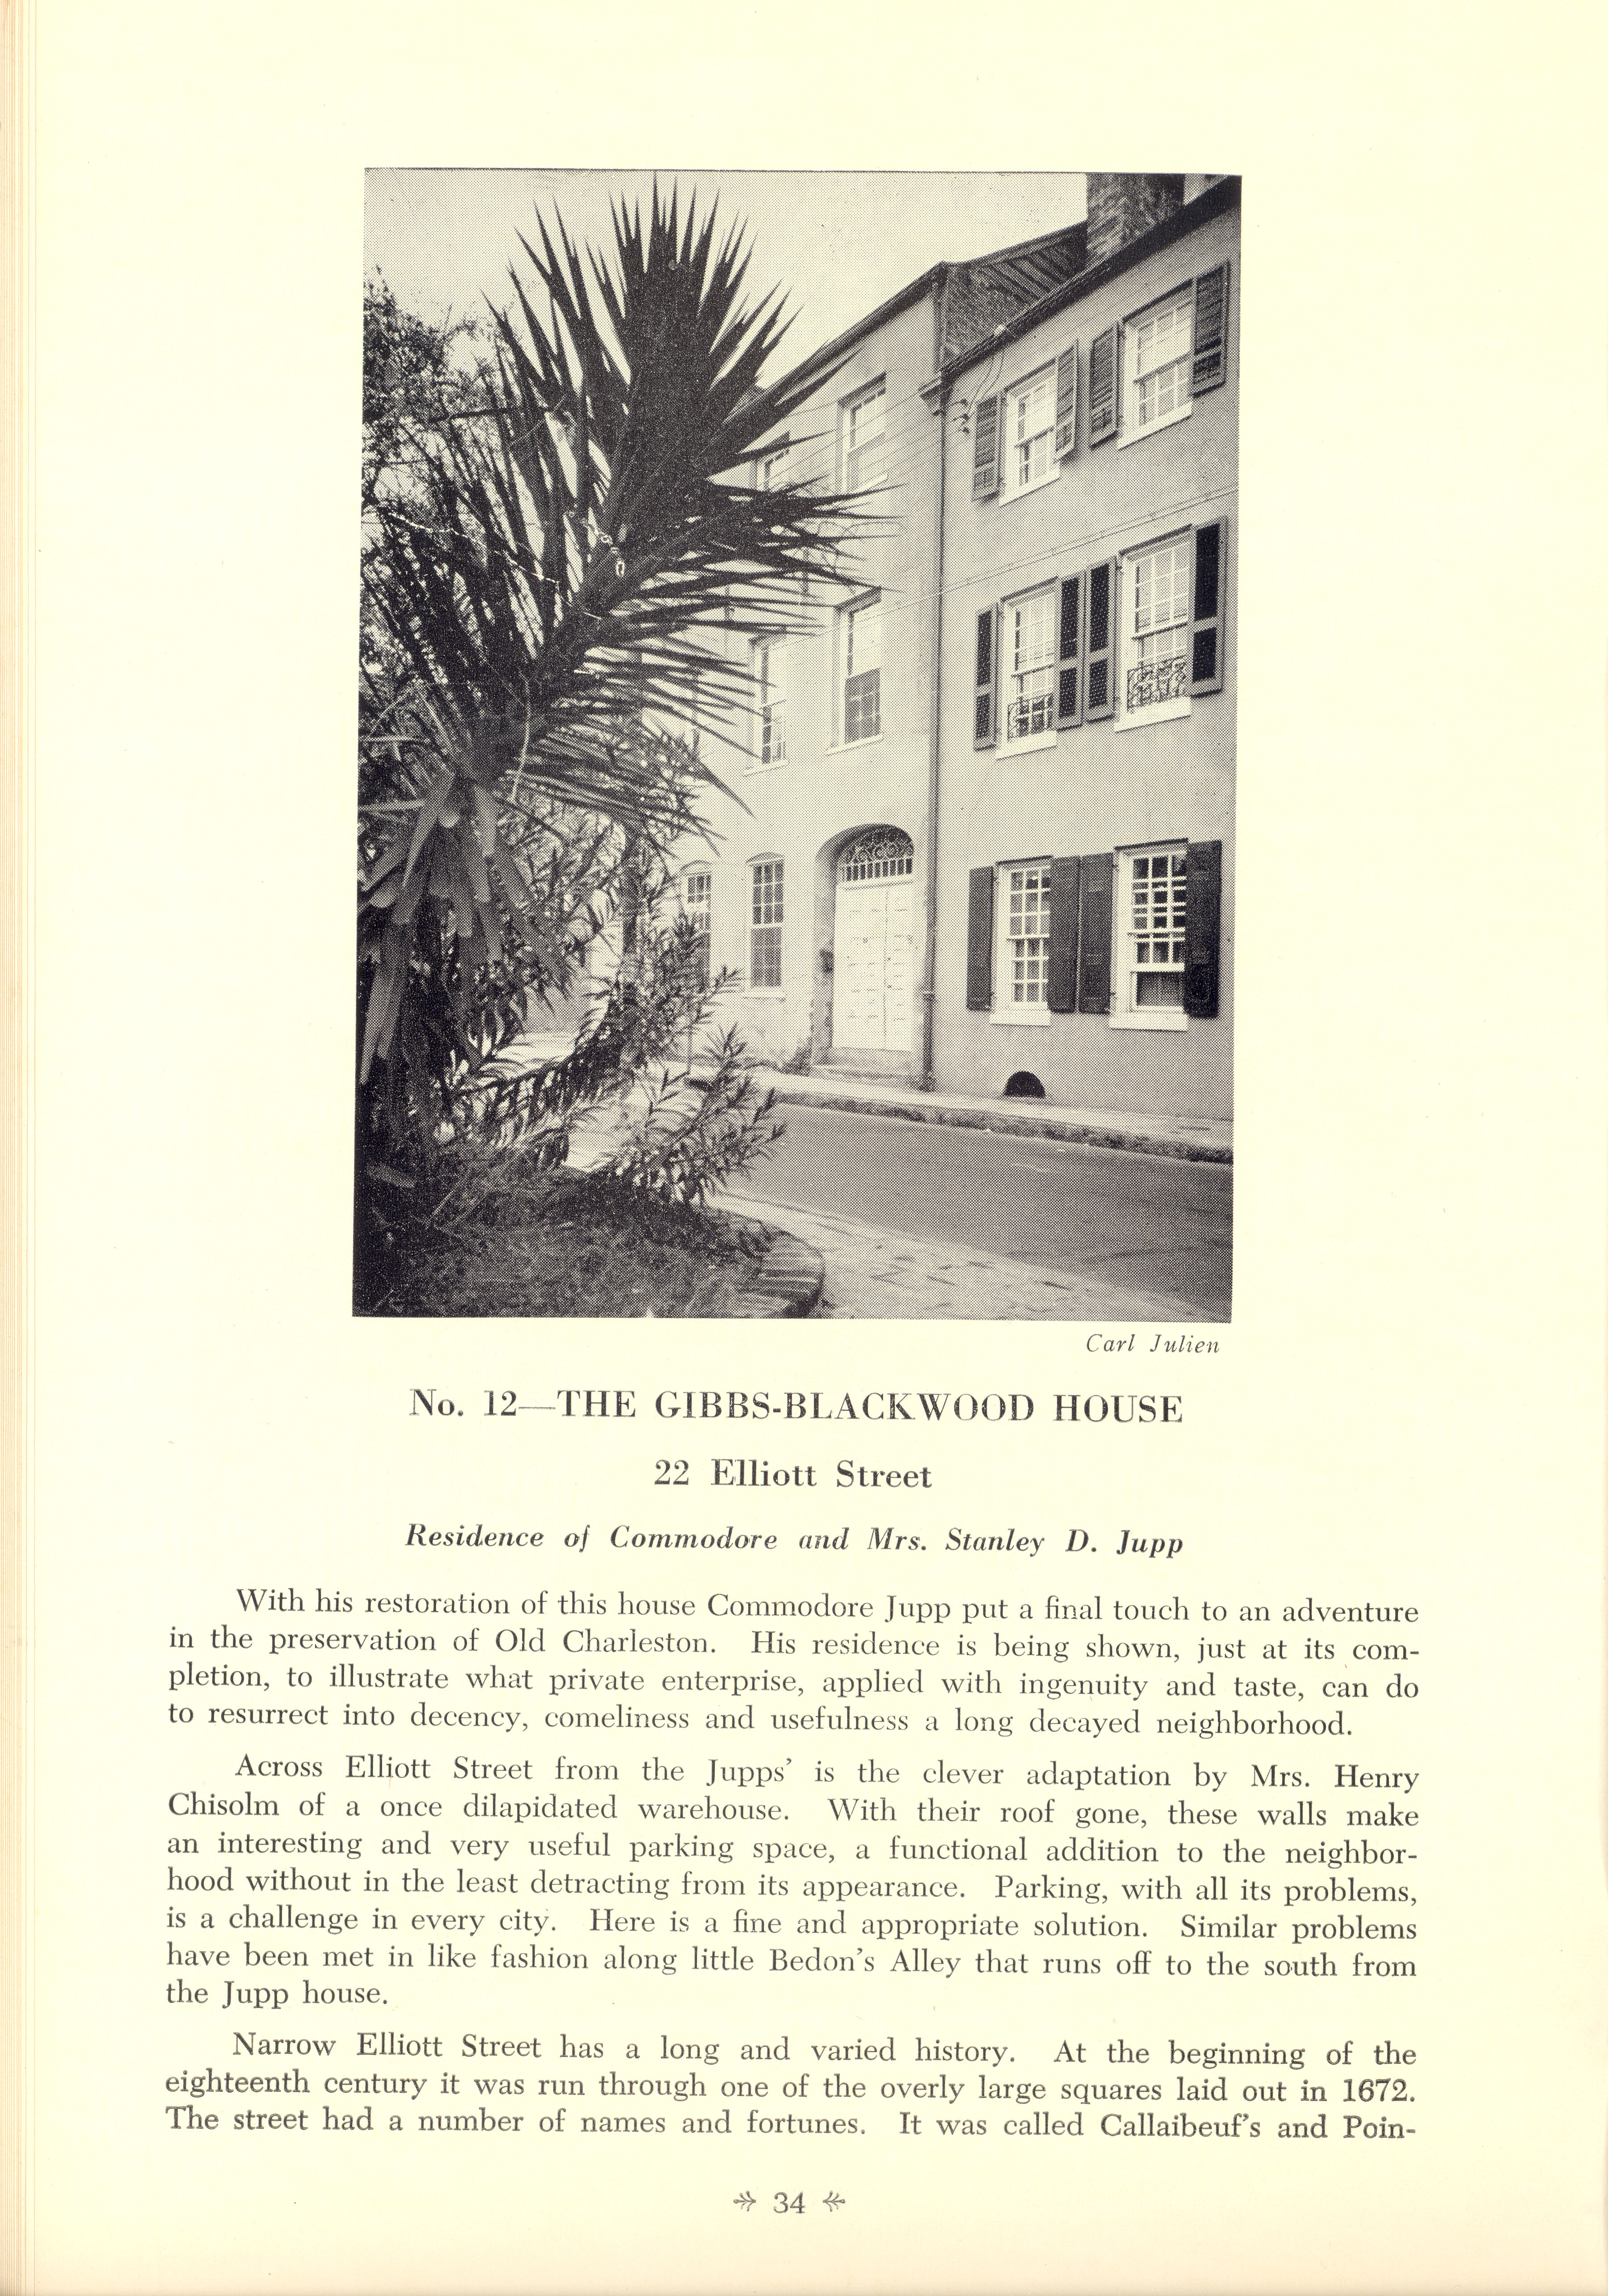 Page 34:  No. 14 - The Gibbs-Blackwood House, 22 Elliott Street